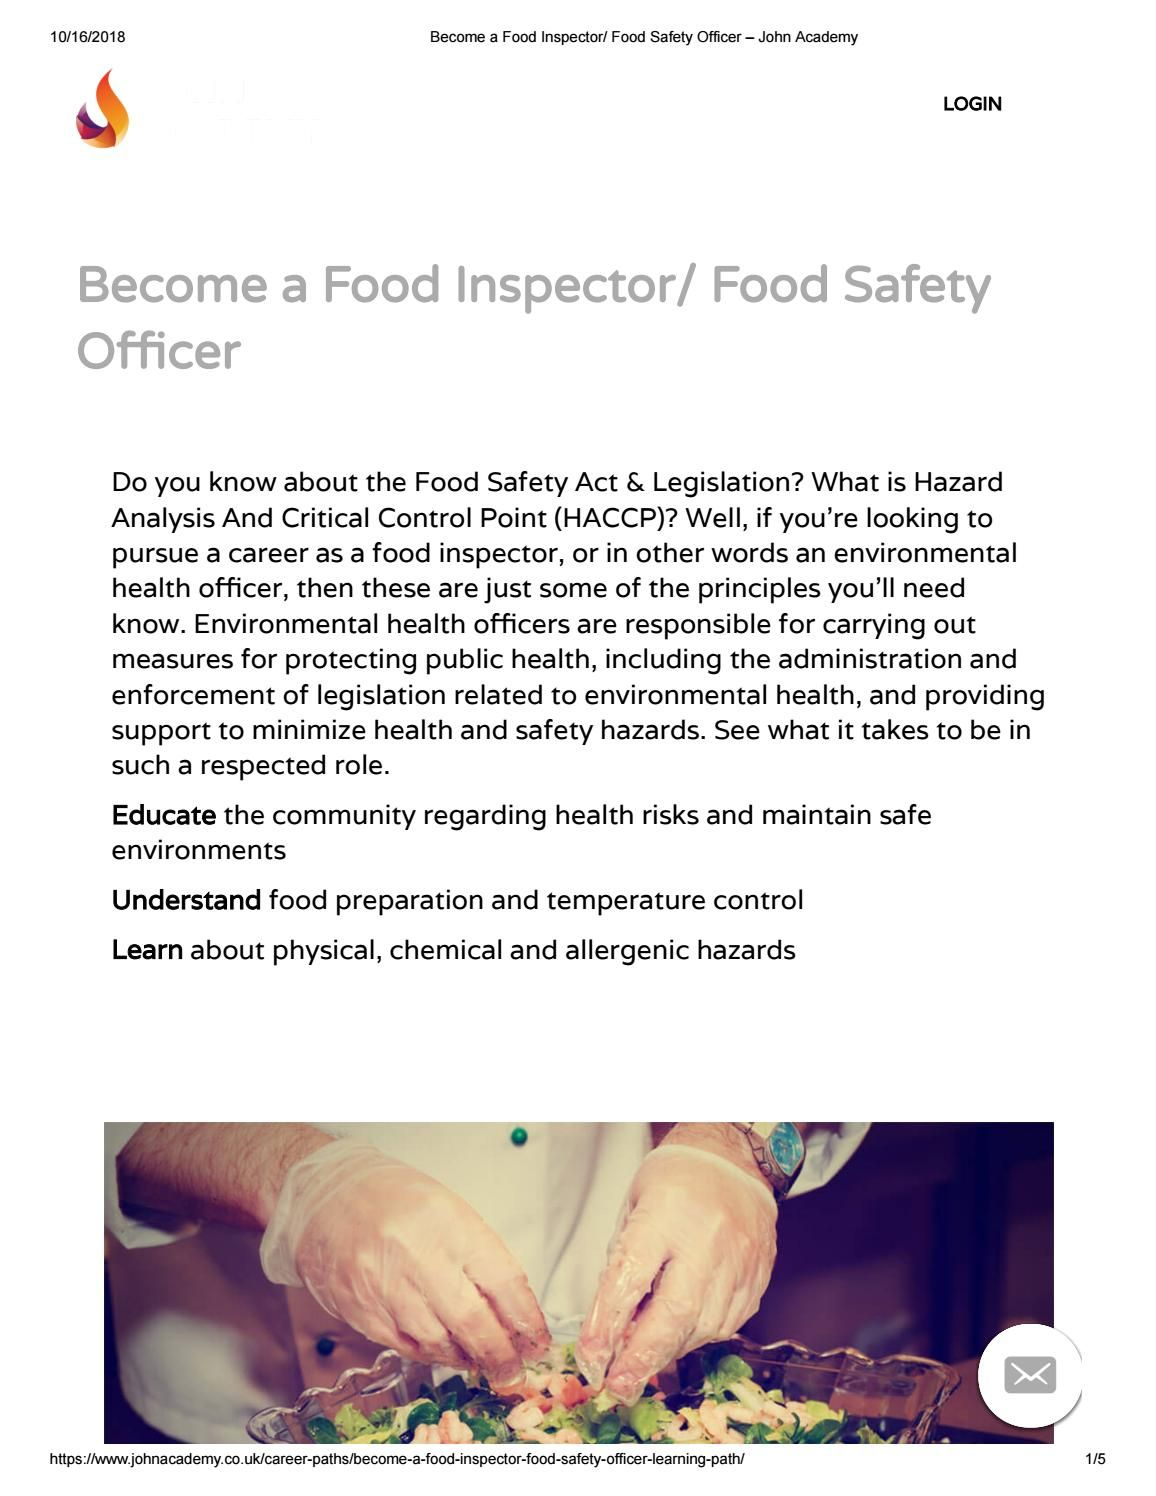 a Food Inspector/ Food Safety Officer course John